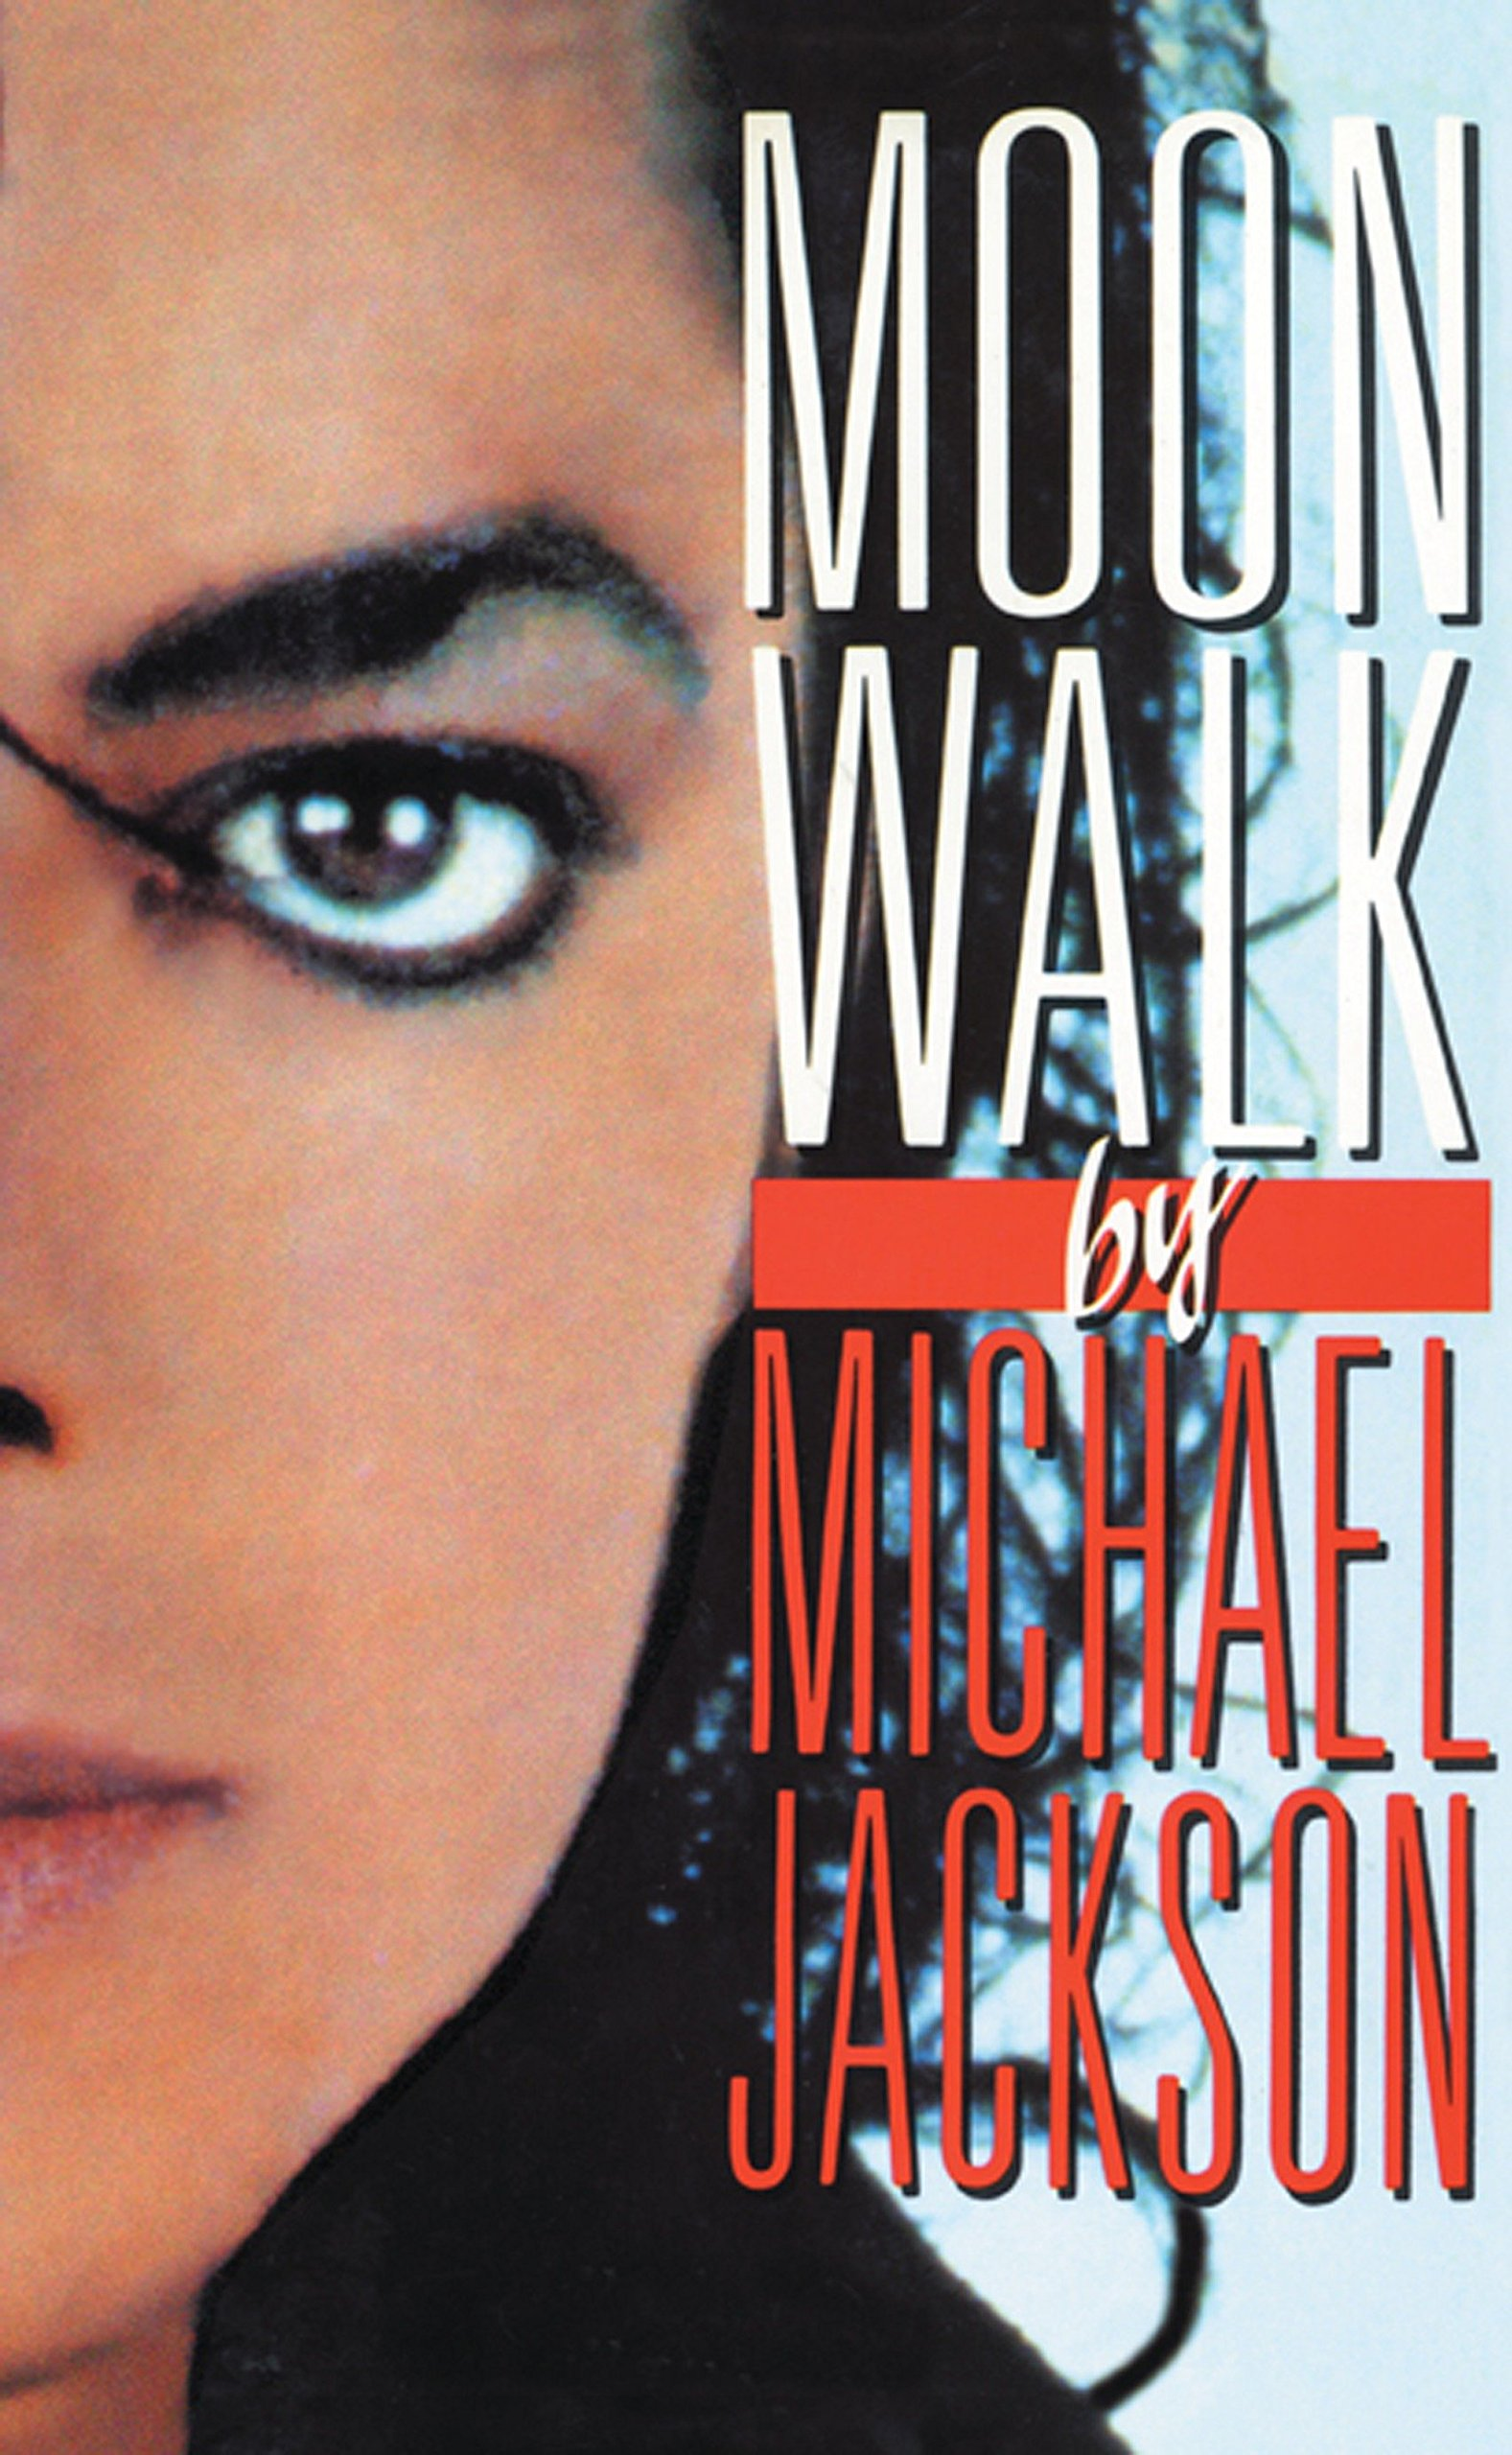 Image result for Michael jackson moonwalk book